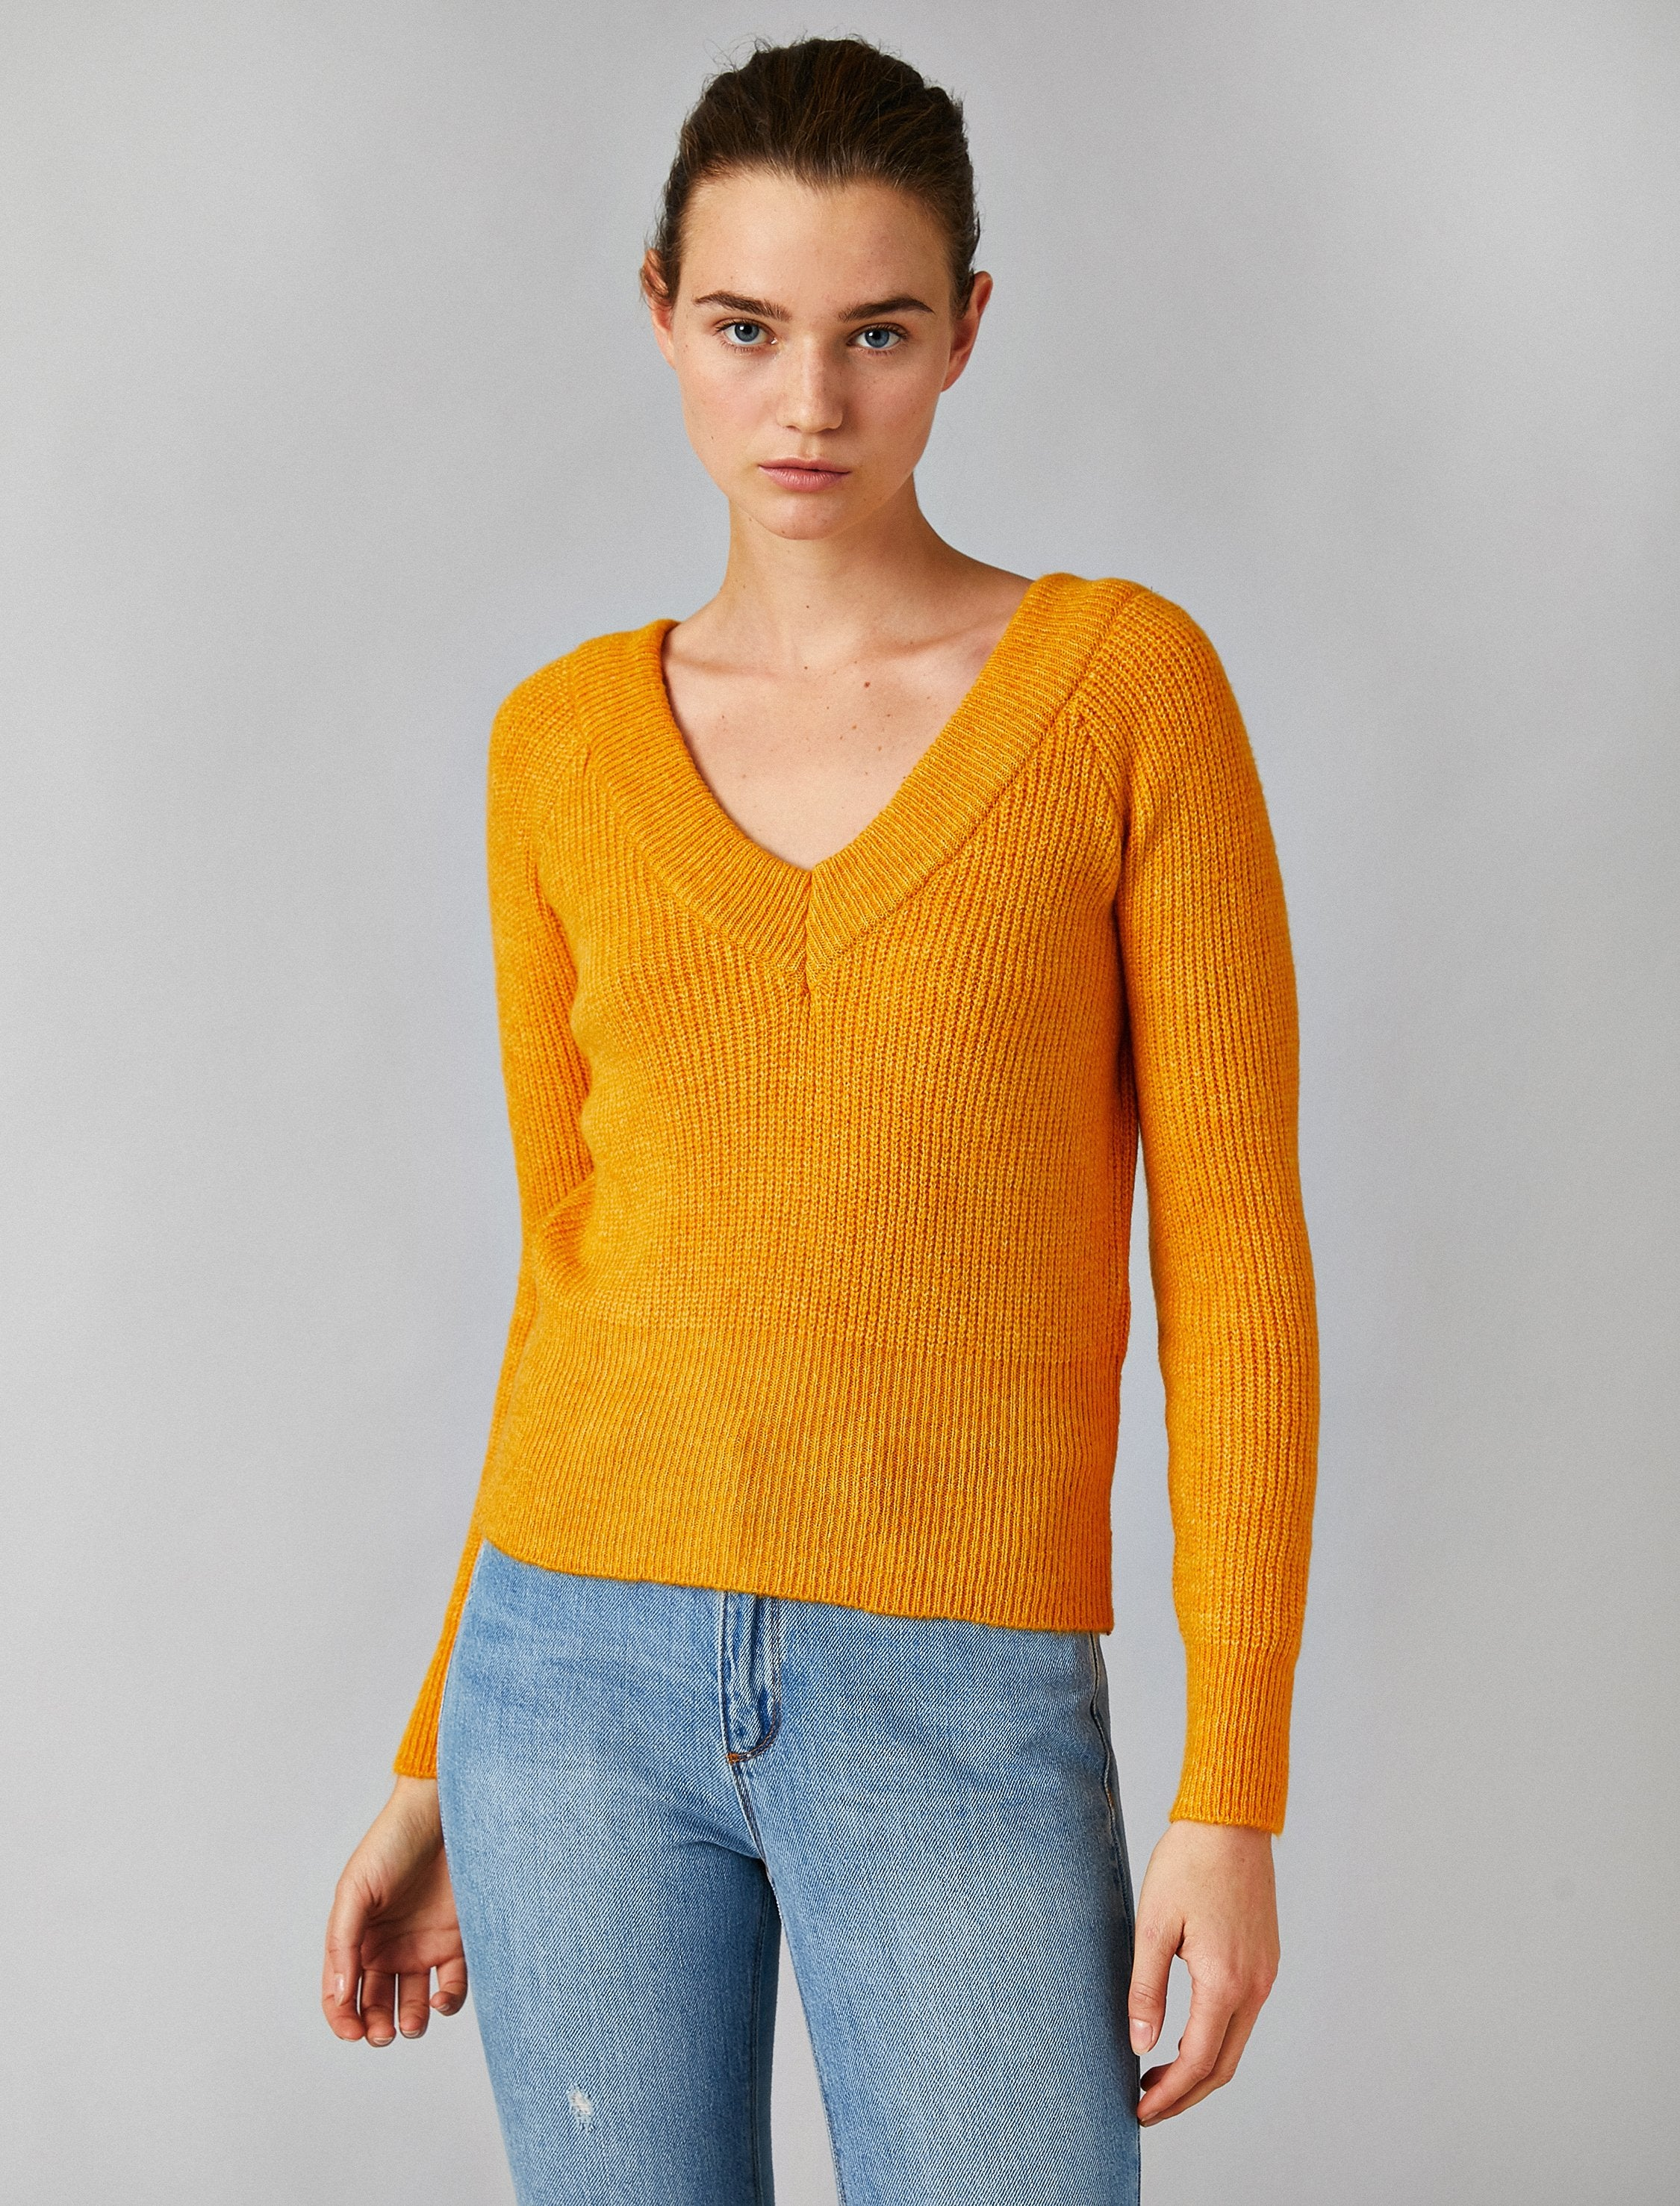 Ribbed V Neck Sweater in Mustard